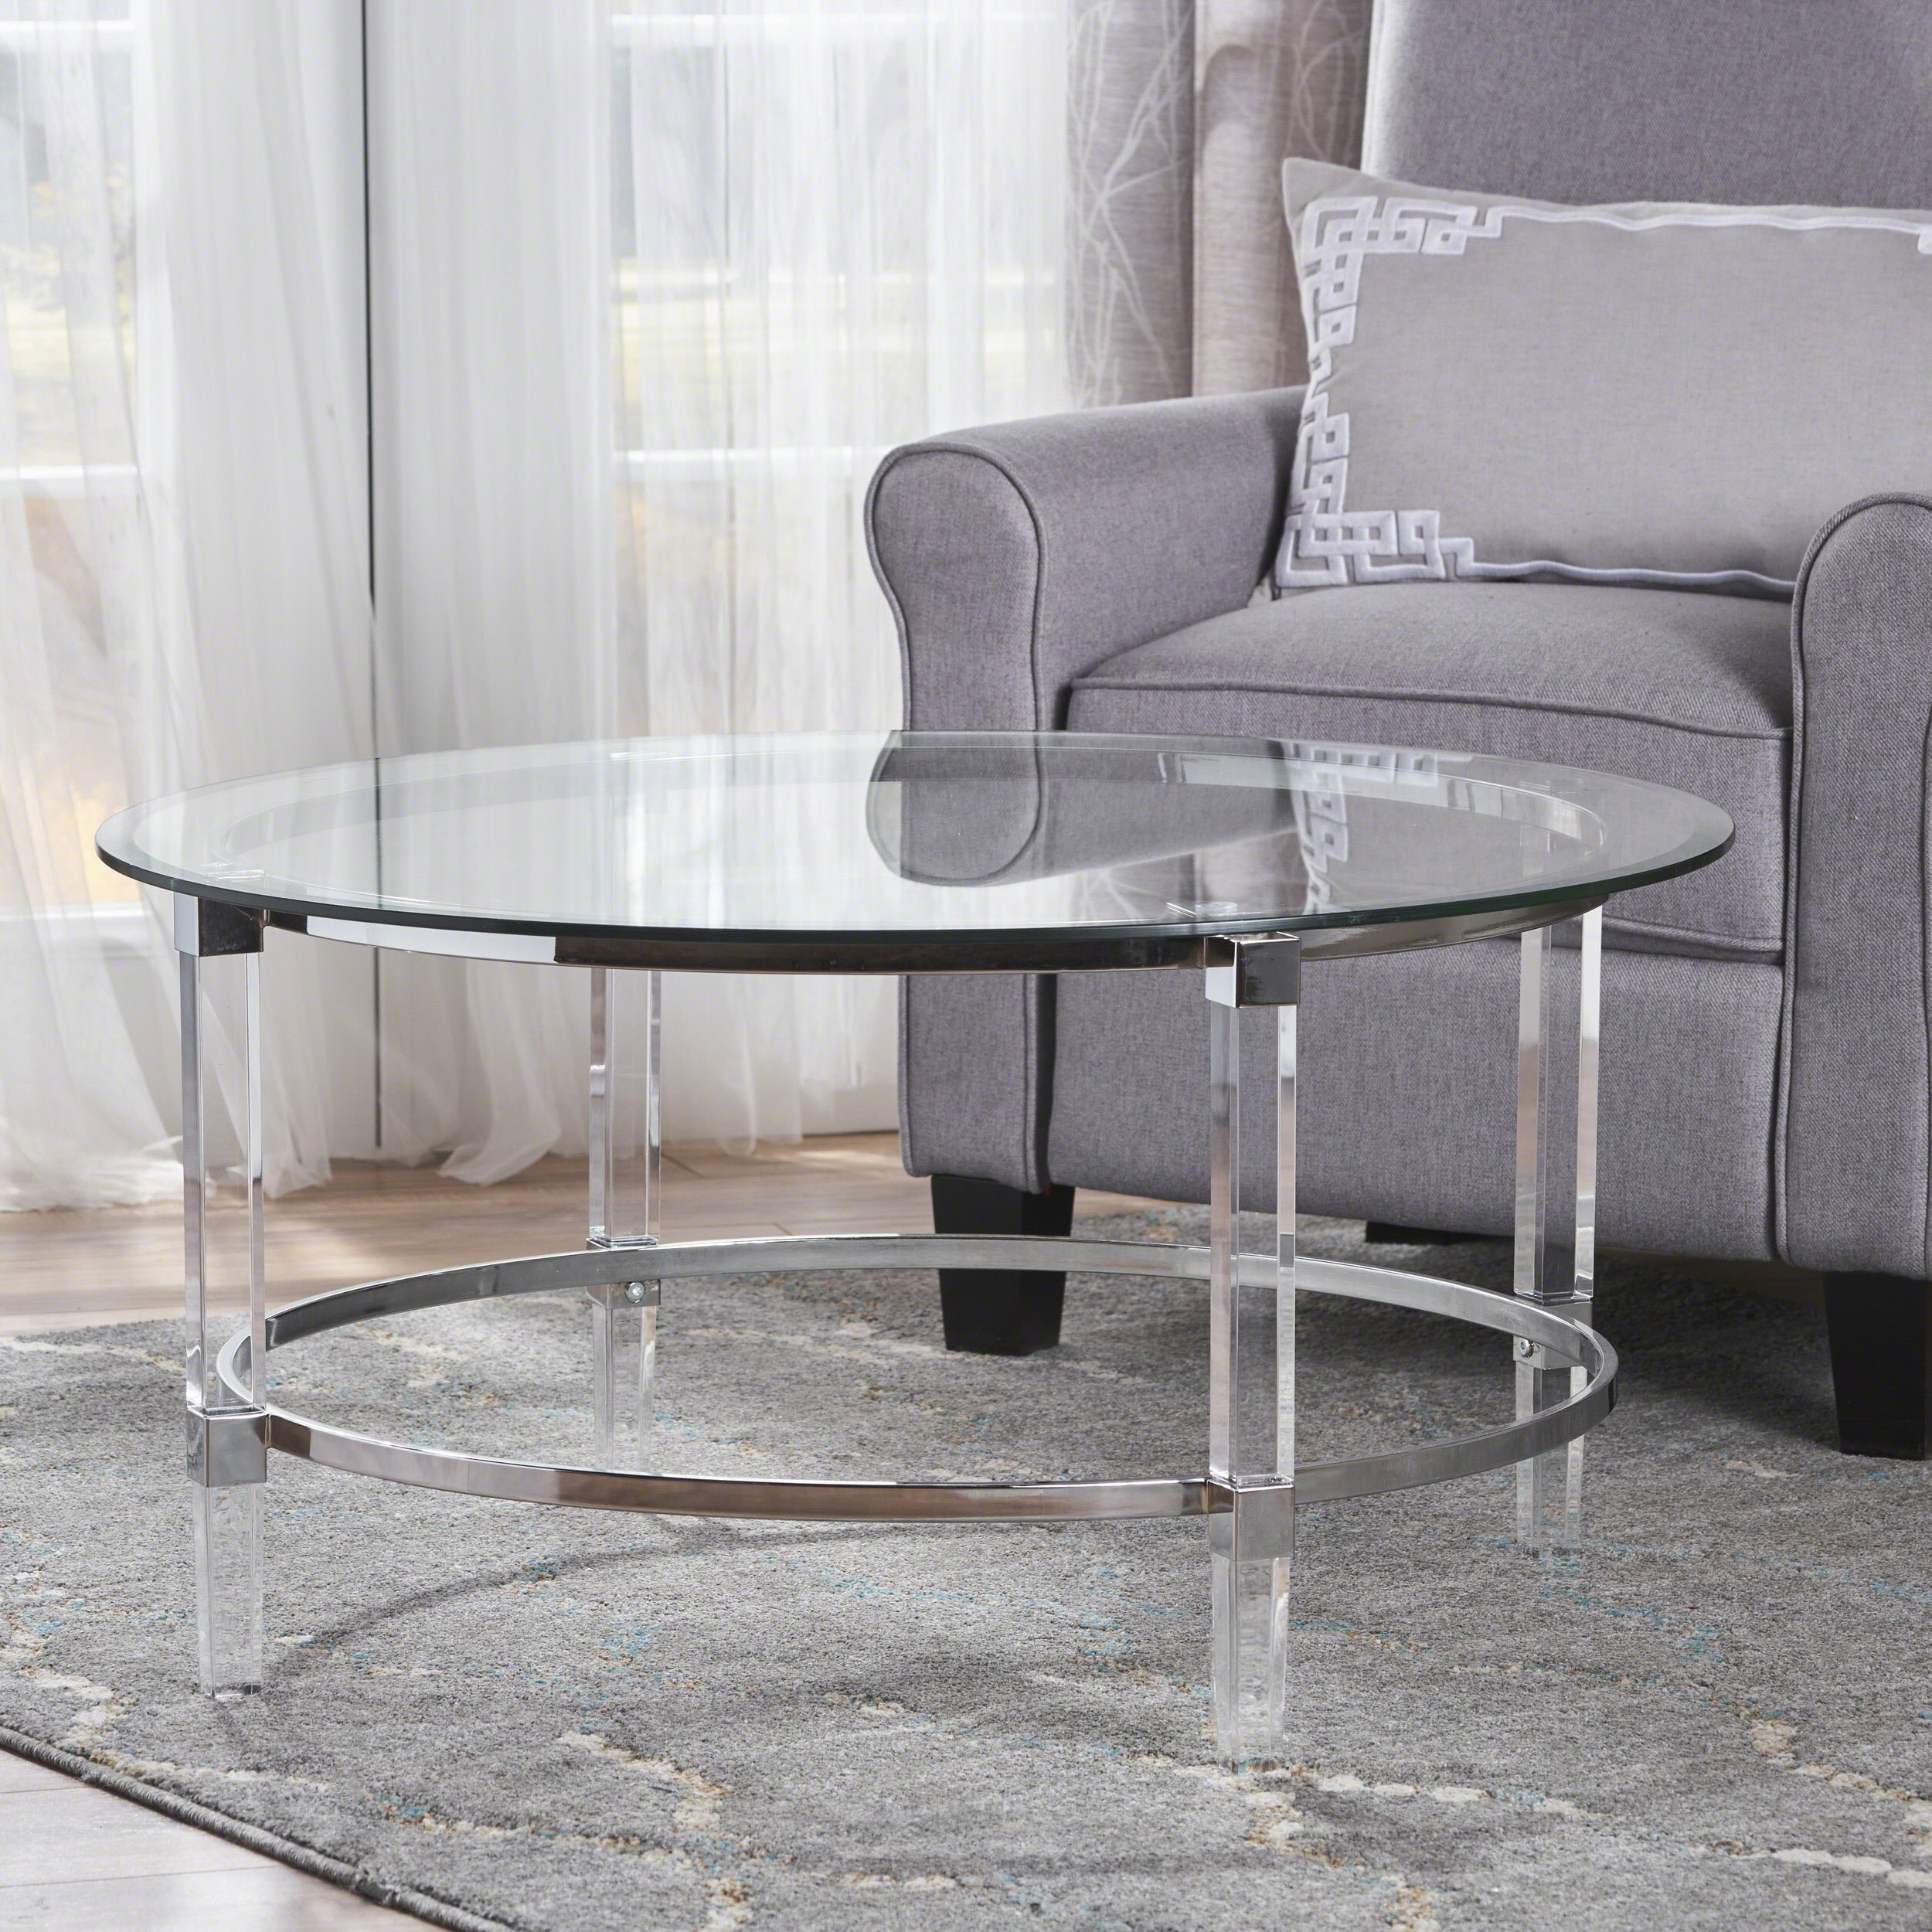 Elowen Round Rectangle Glass Coffee Table By Christopher Knight Home